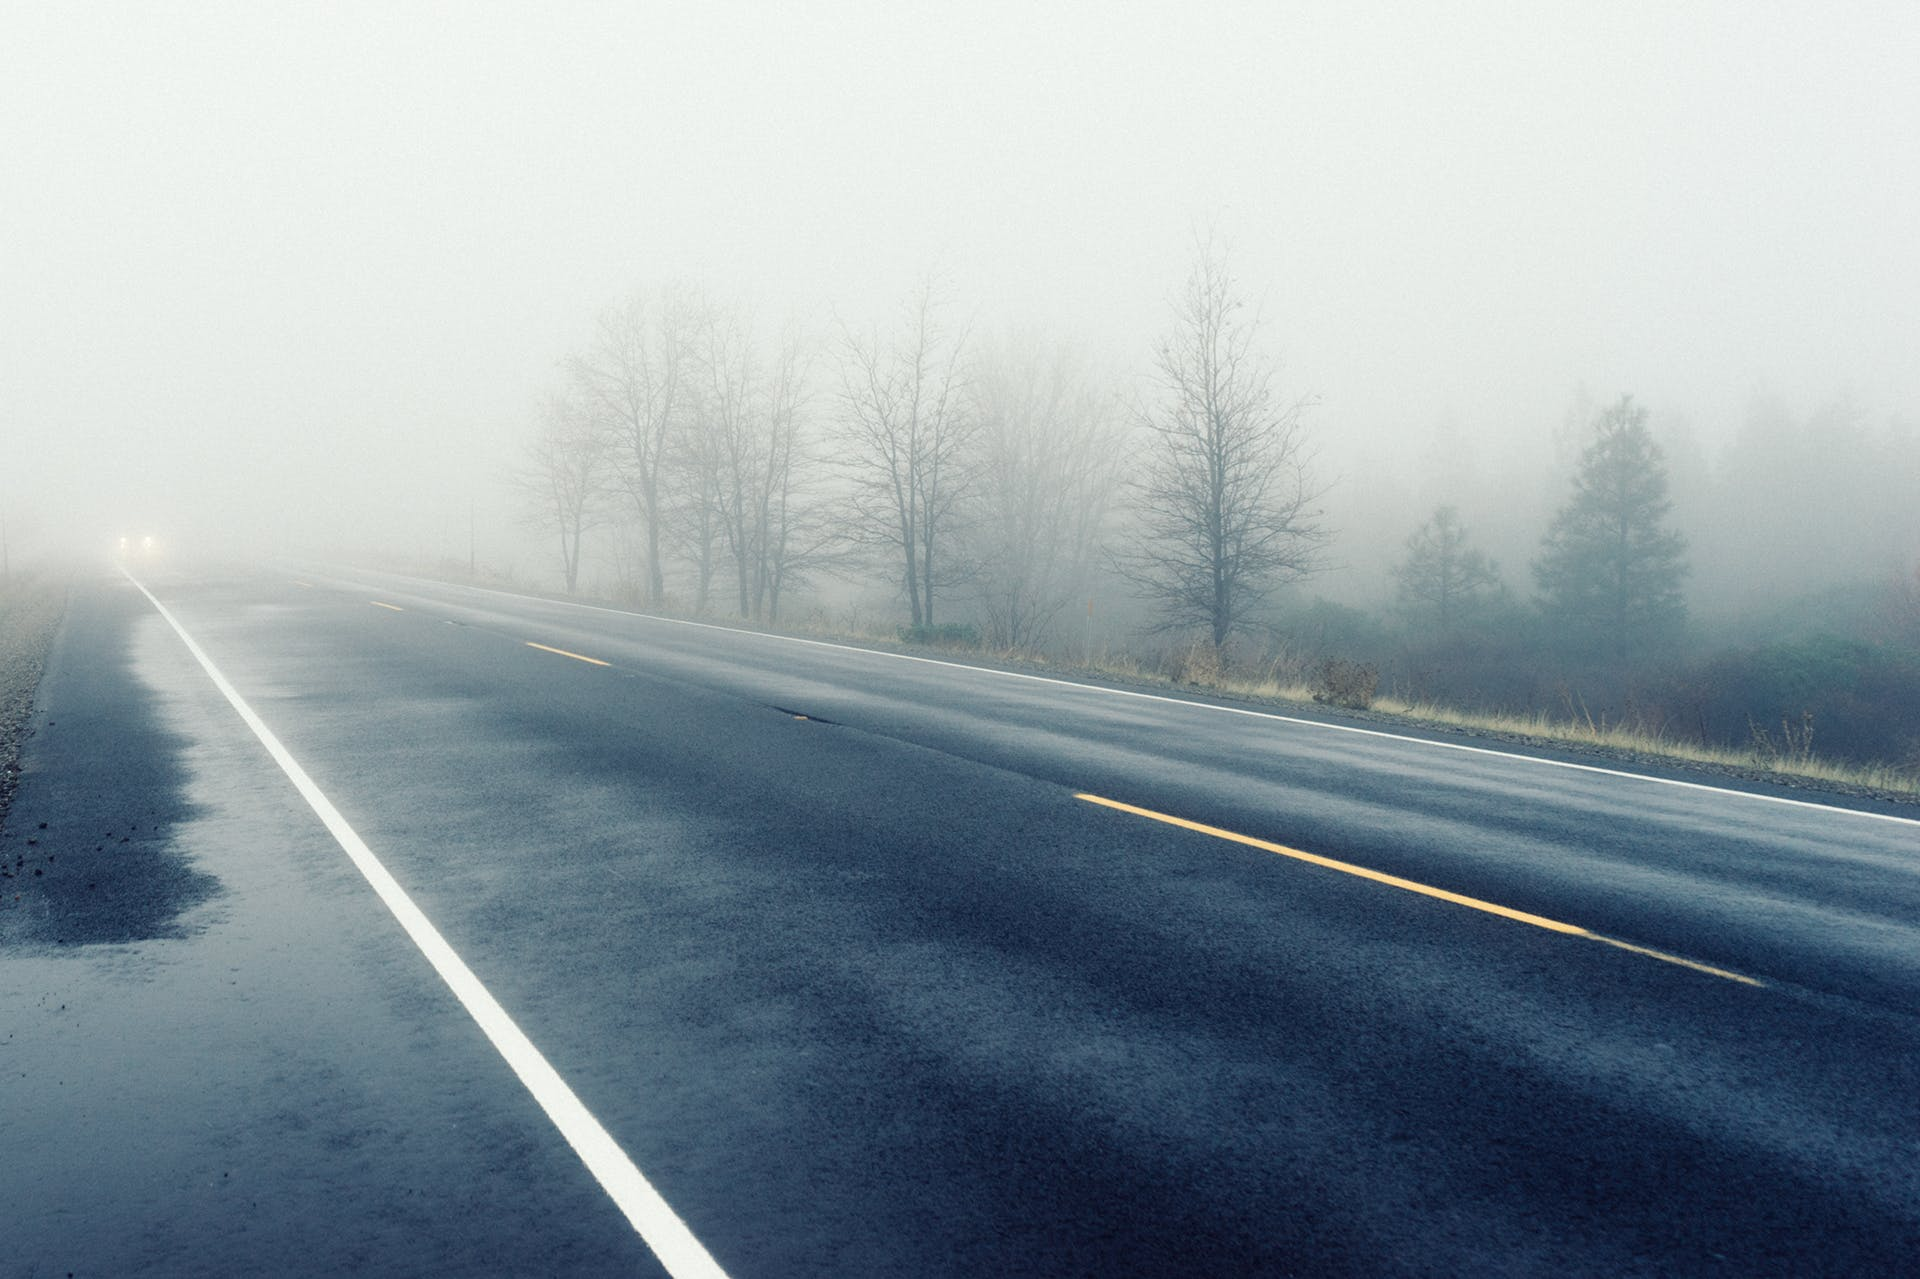 Grey Concrete Road Covered by Fogs